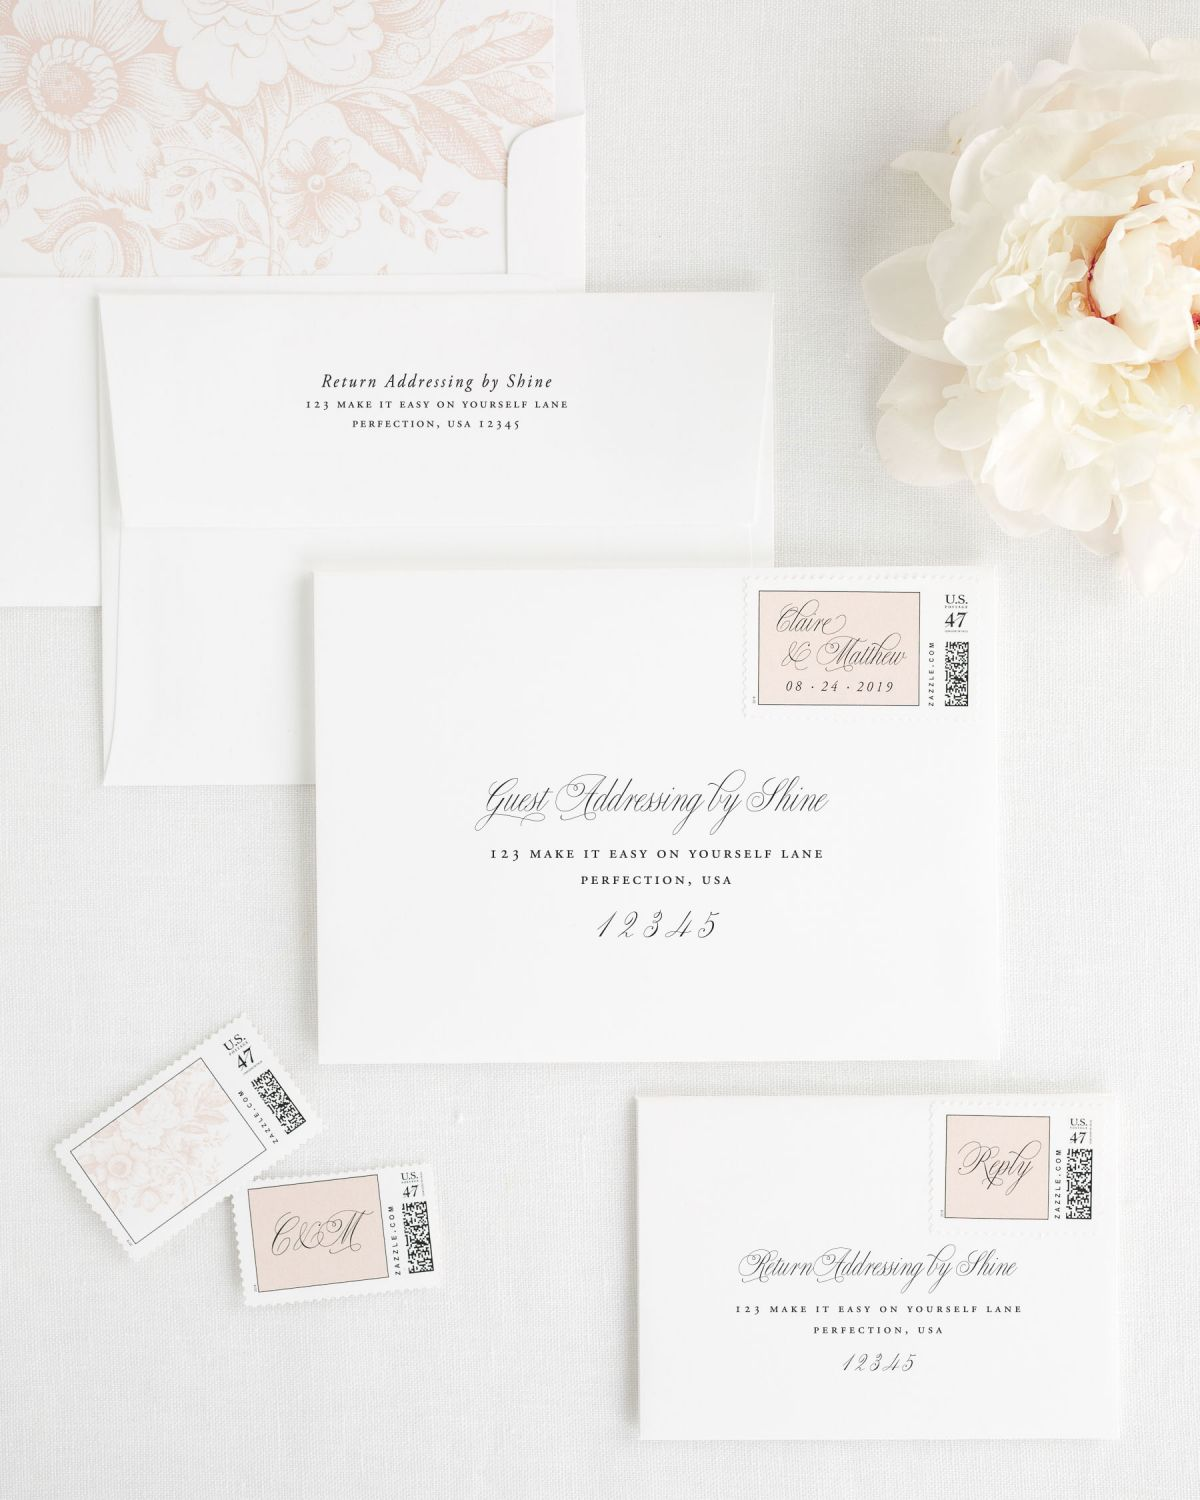 Wedding Envelopes with Address Printing and Custom Stamps